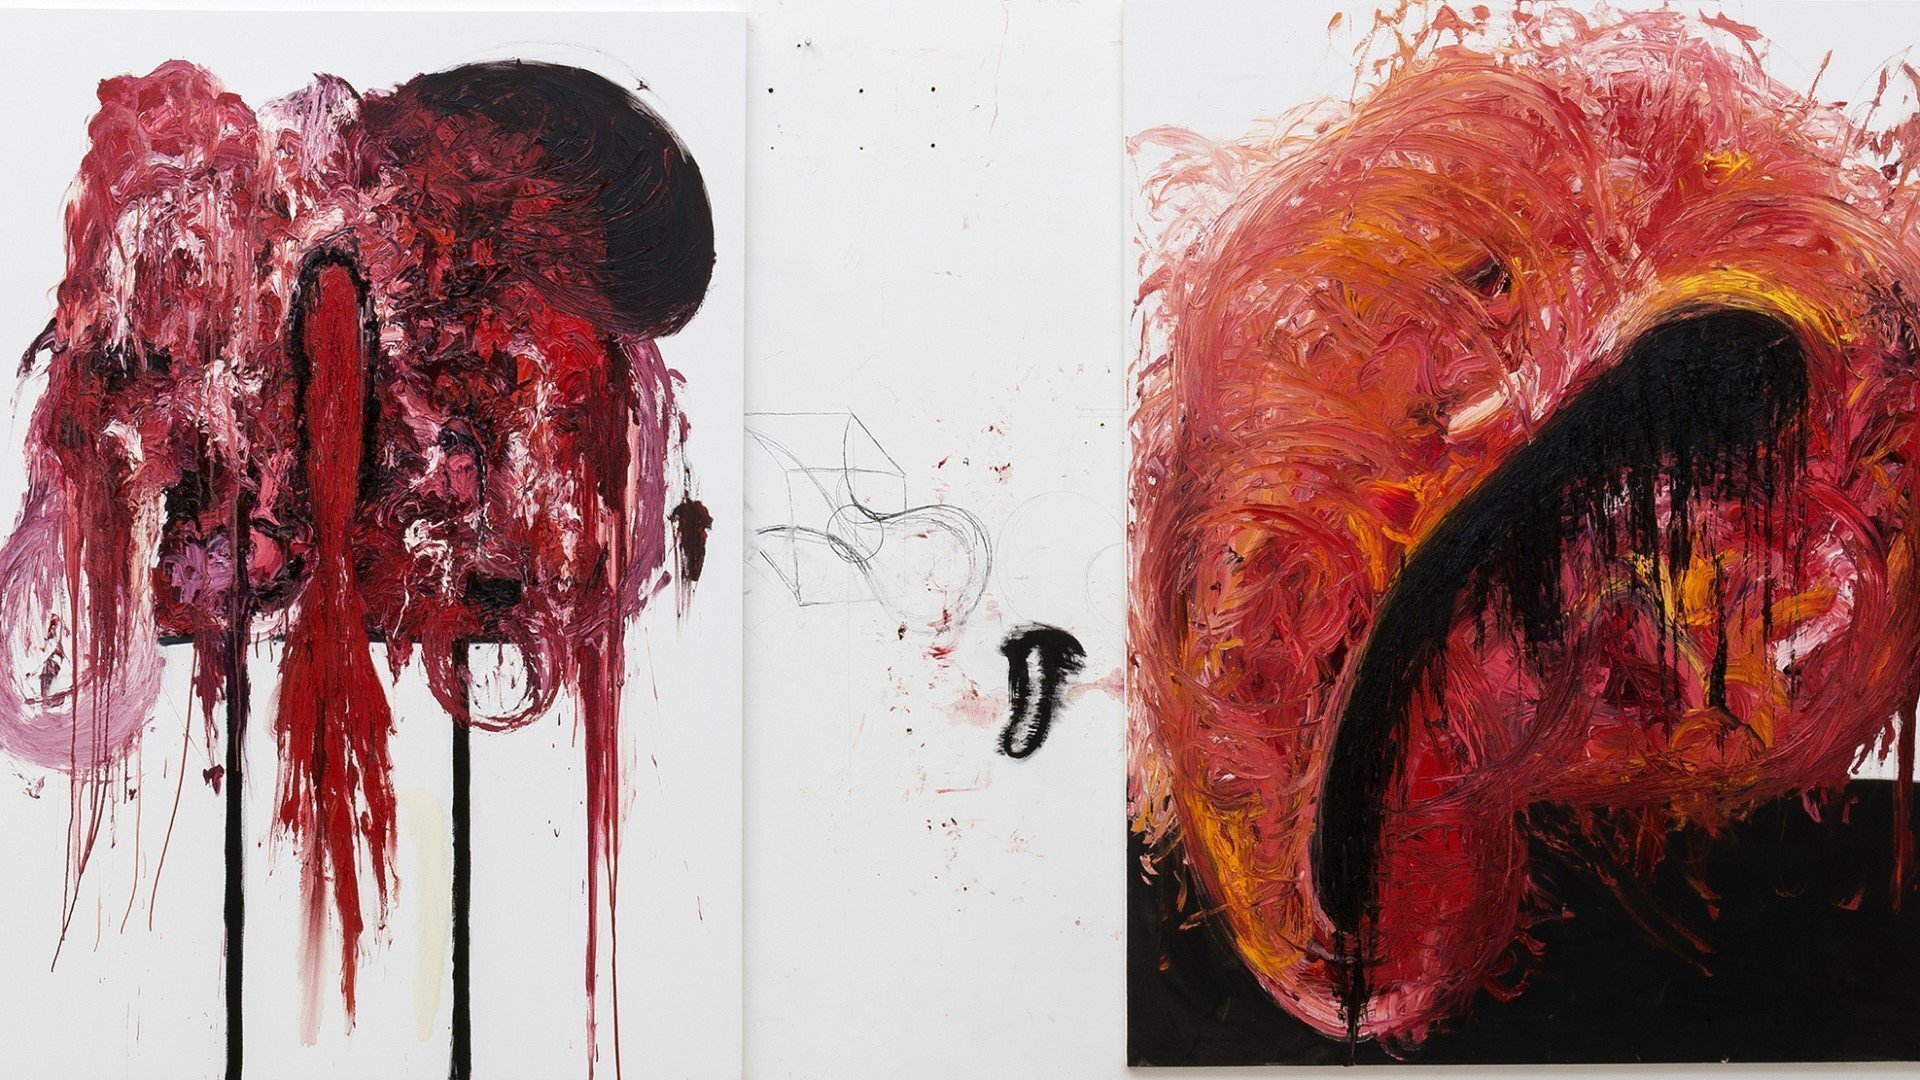 Anish Kapoor: Painting Exhibition at Modern Art Oxford